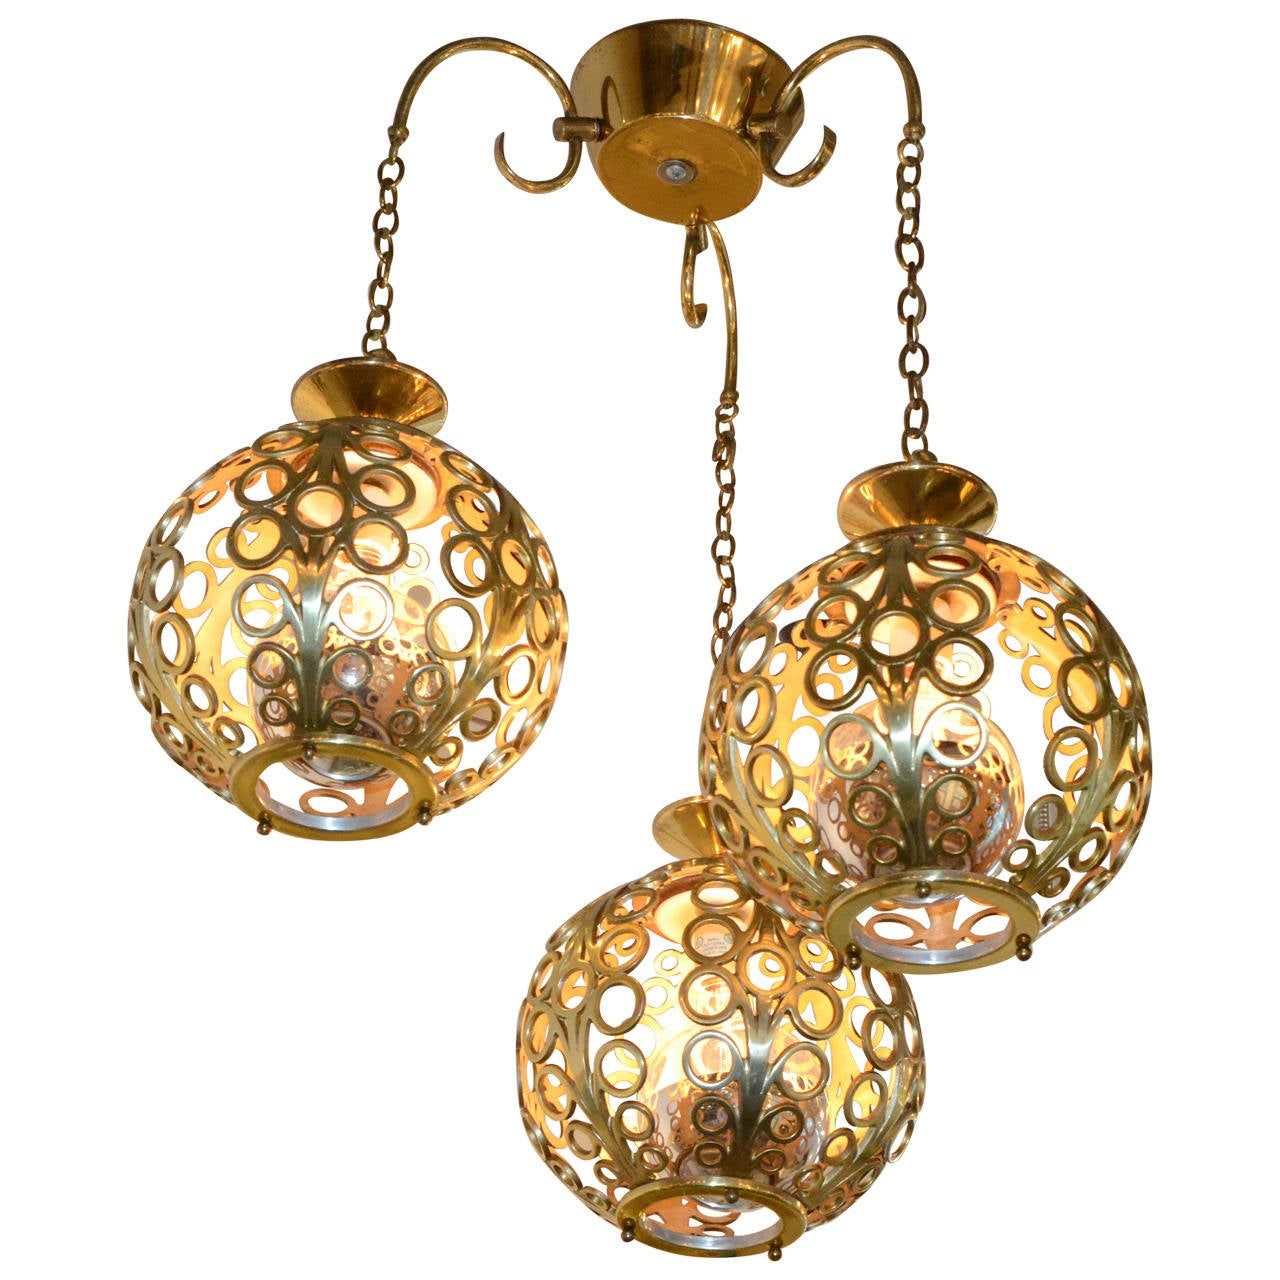 Mid century modern moroccan filigree three globe brass chandelier mid century modern moroccan filigree three globe brass chandelier 1 arubaitofo Image collections